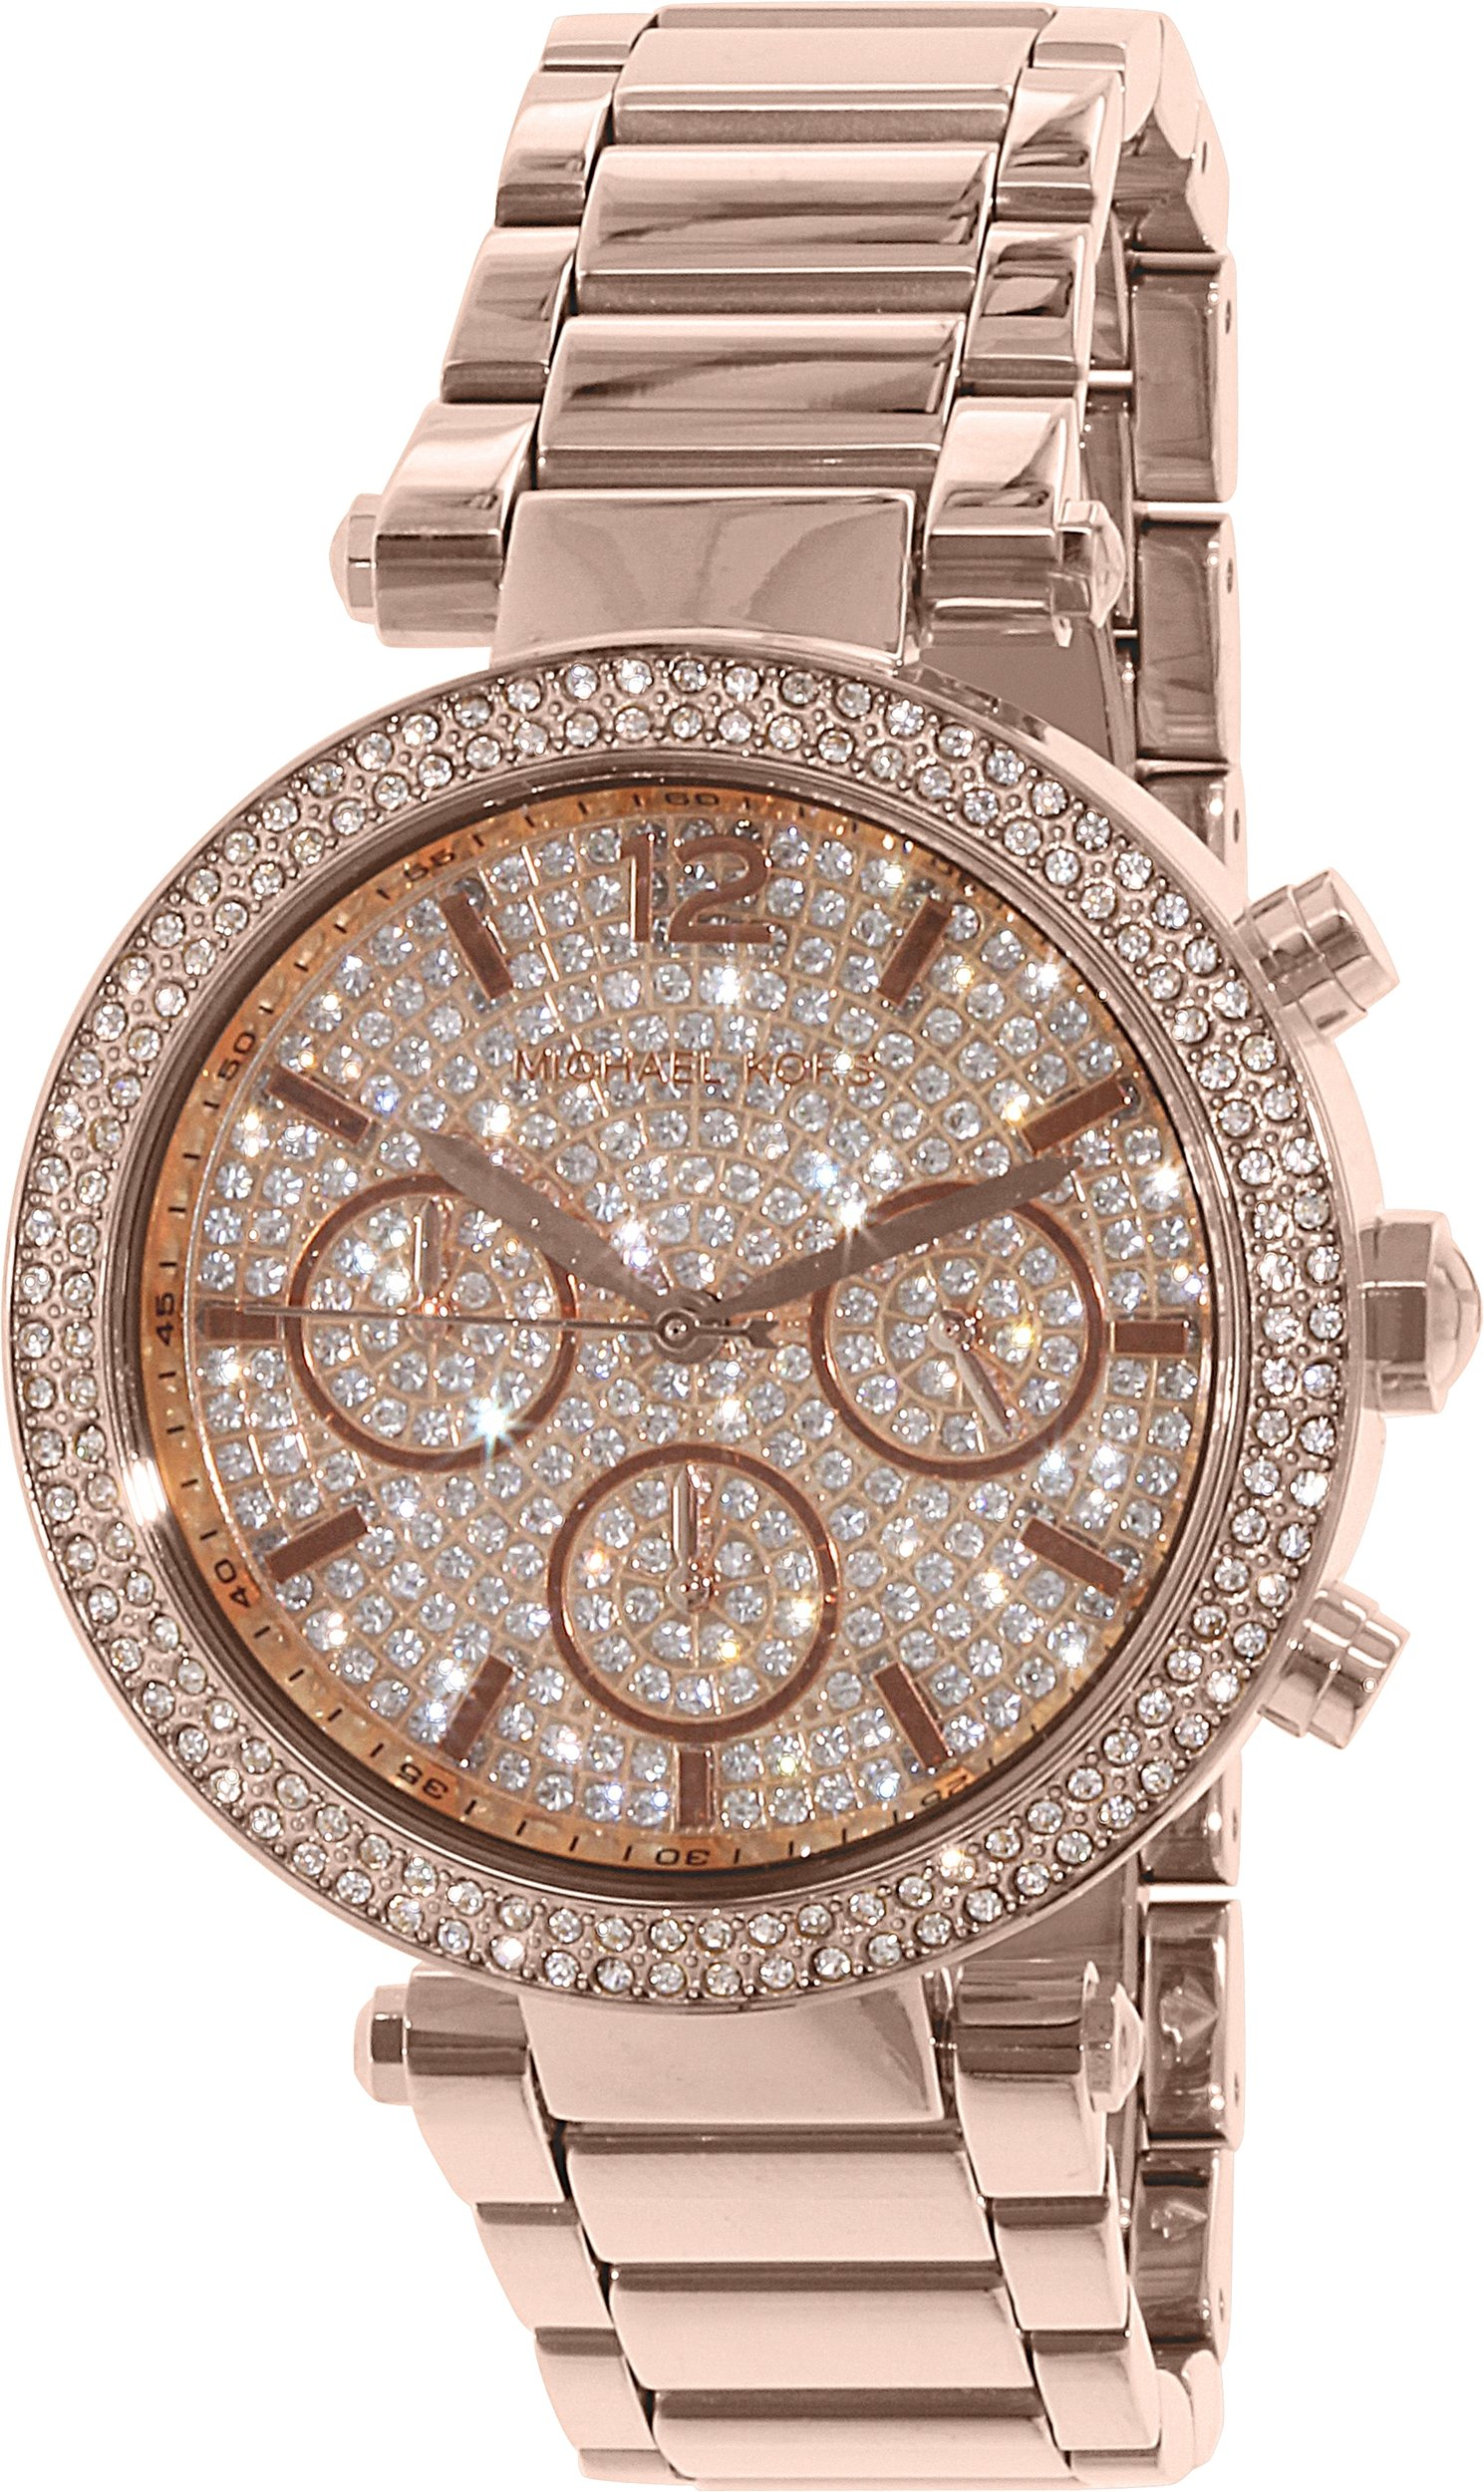 Michael Kors Parker Rose Gold Stainless Steel Glitz Dial Women's Chronograph Watch MK5857 by Michael Kors